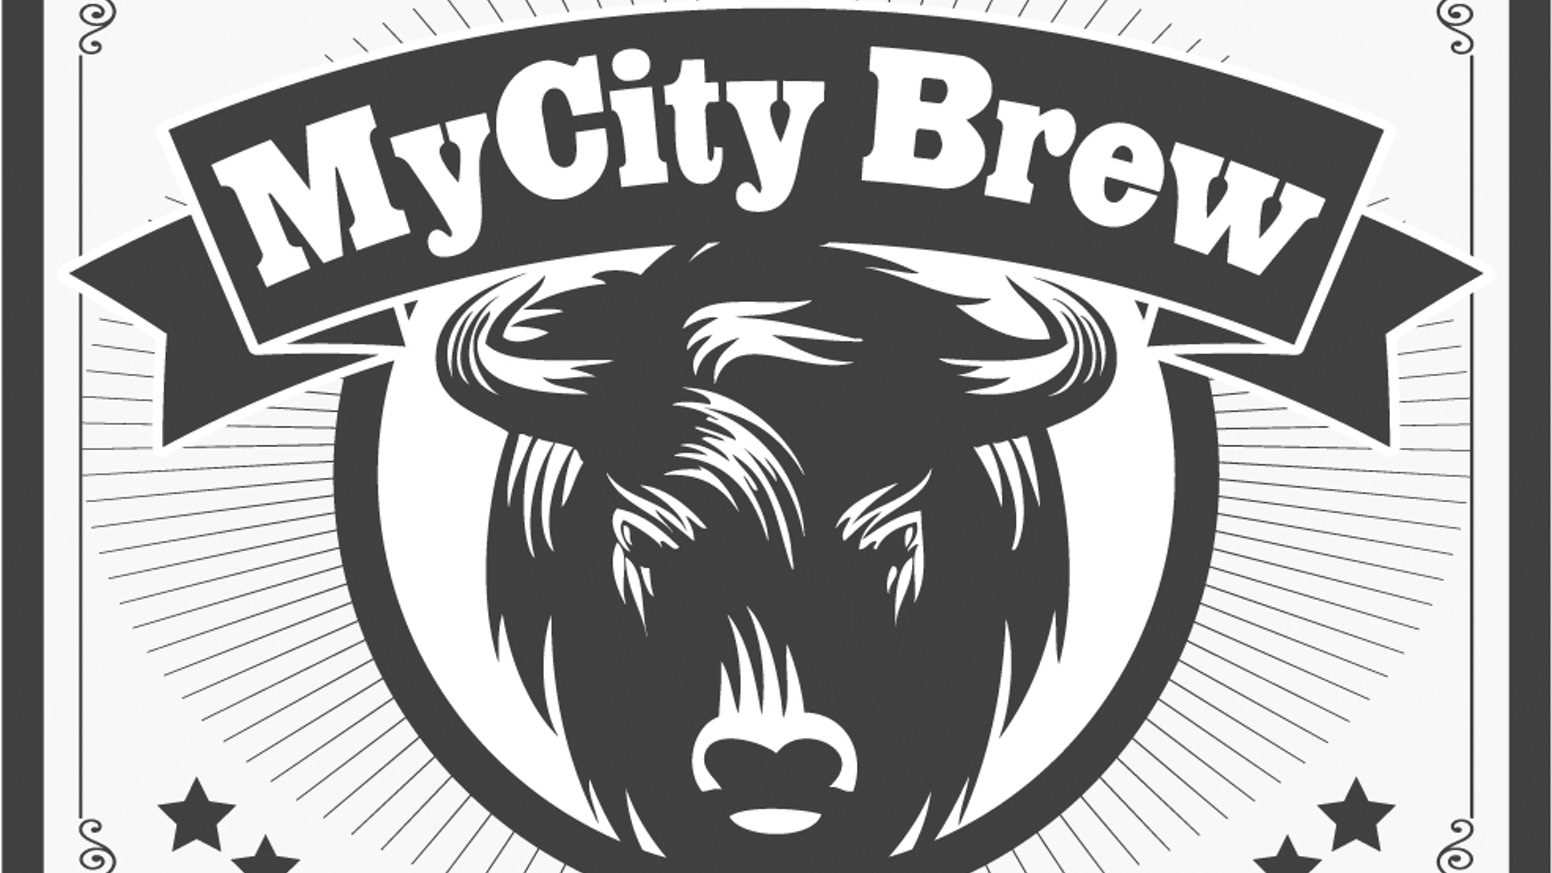 We're letting Buffalo design, test, and select its own beer!